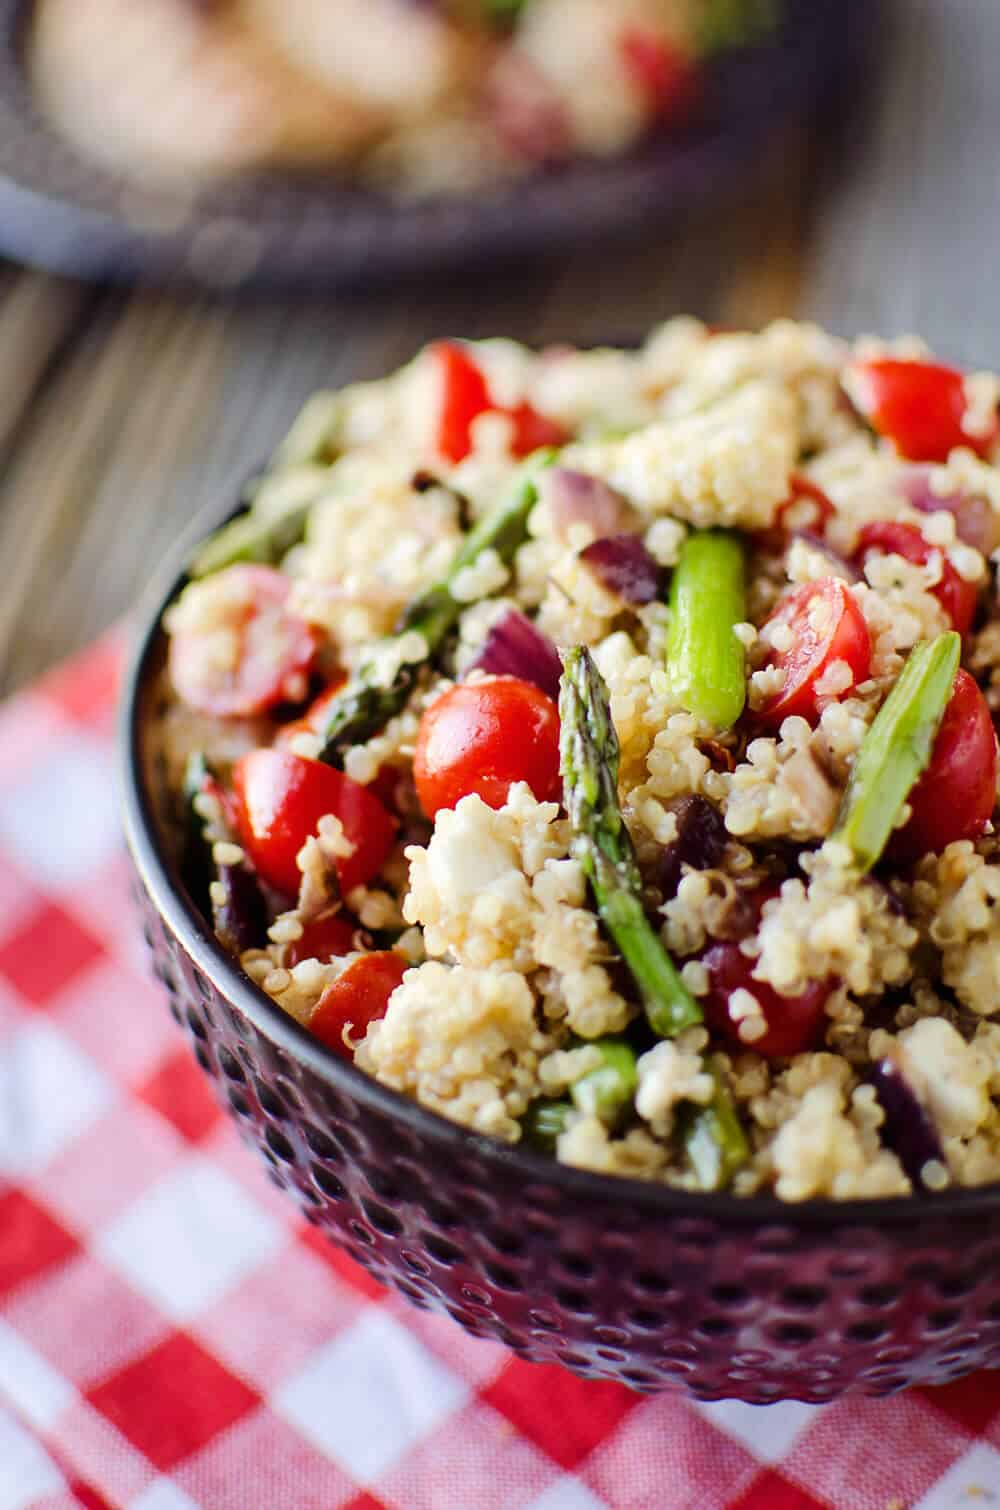 Asparagus-and-Feta-Quinoa-Salad-4-copy2